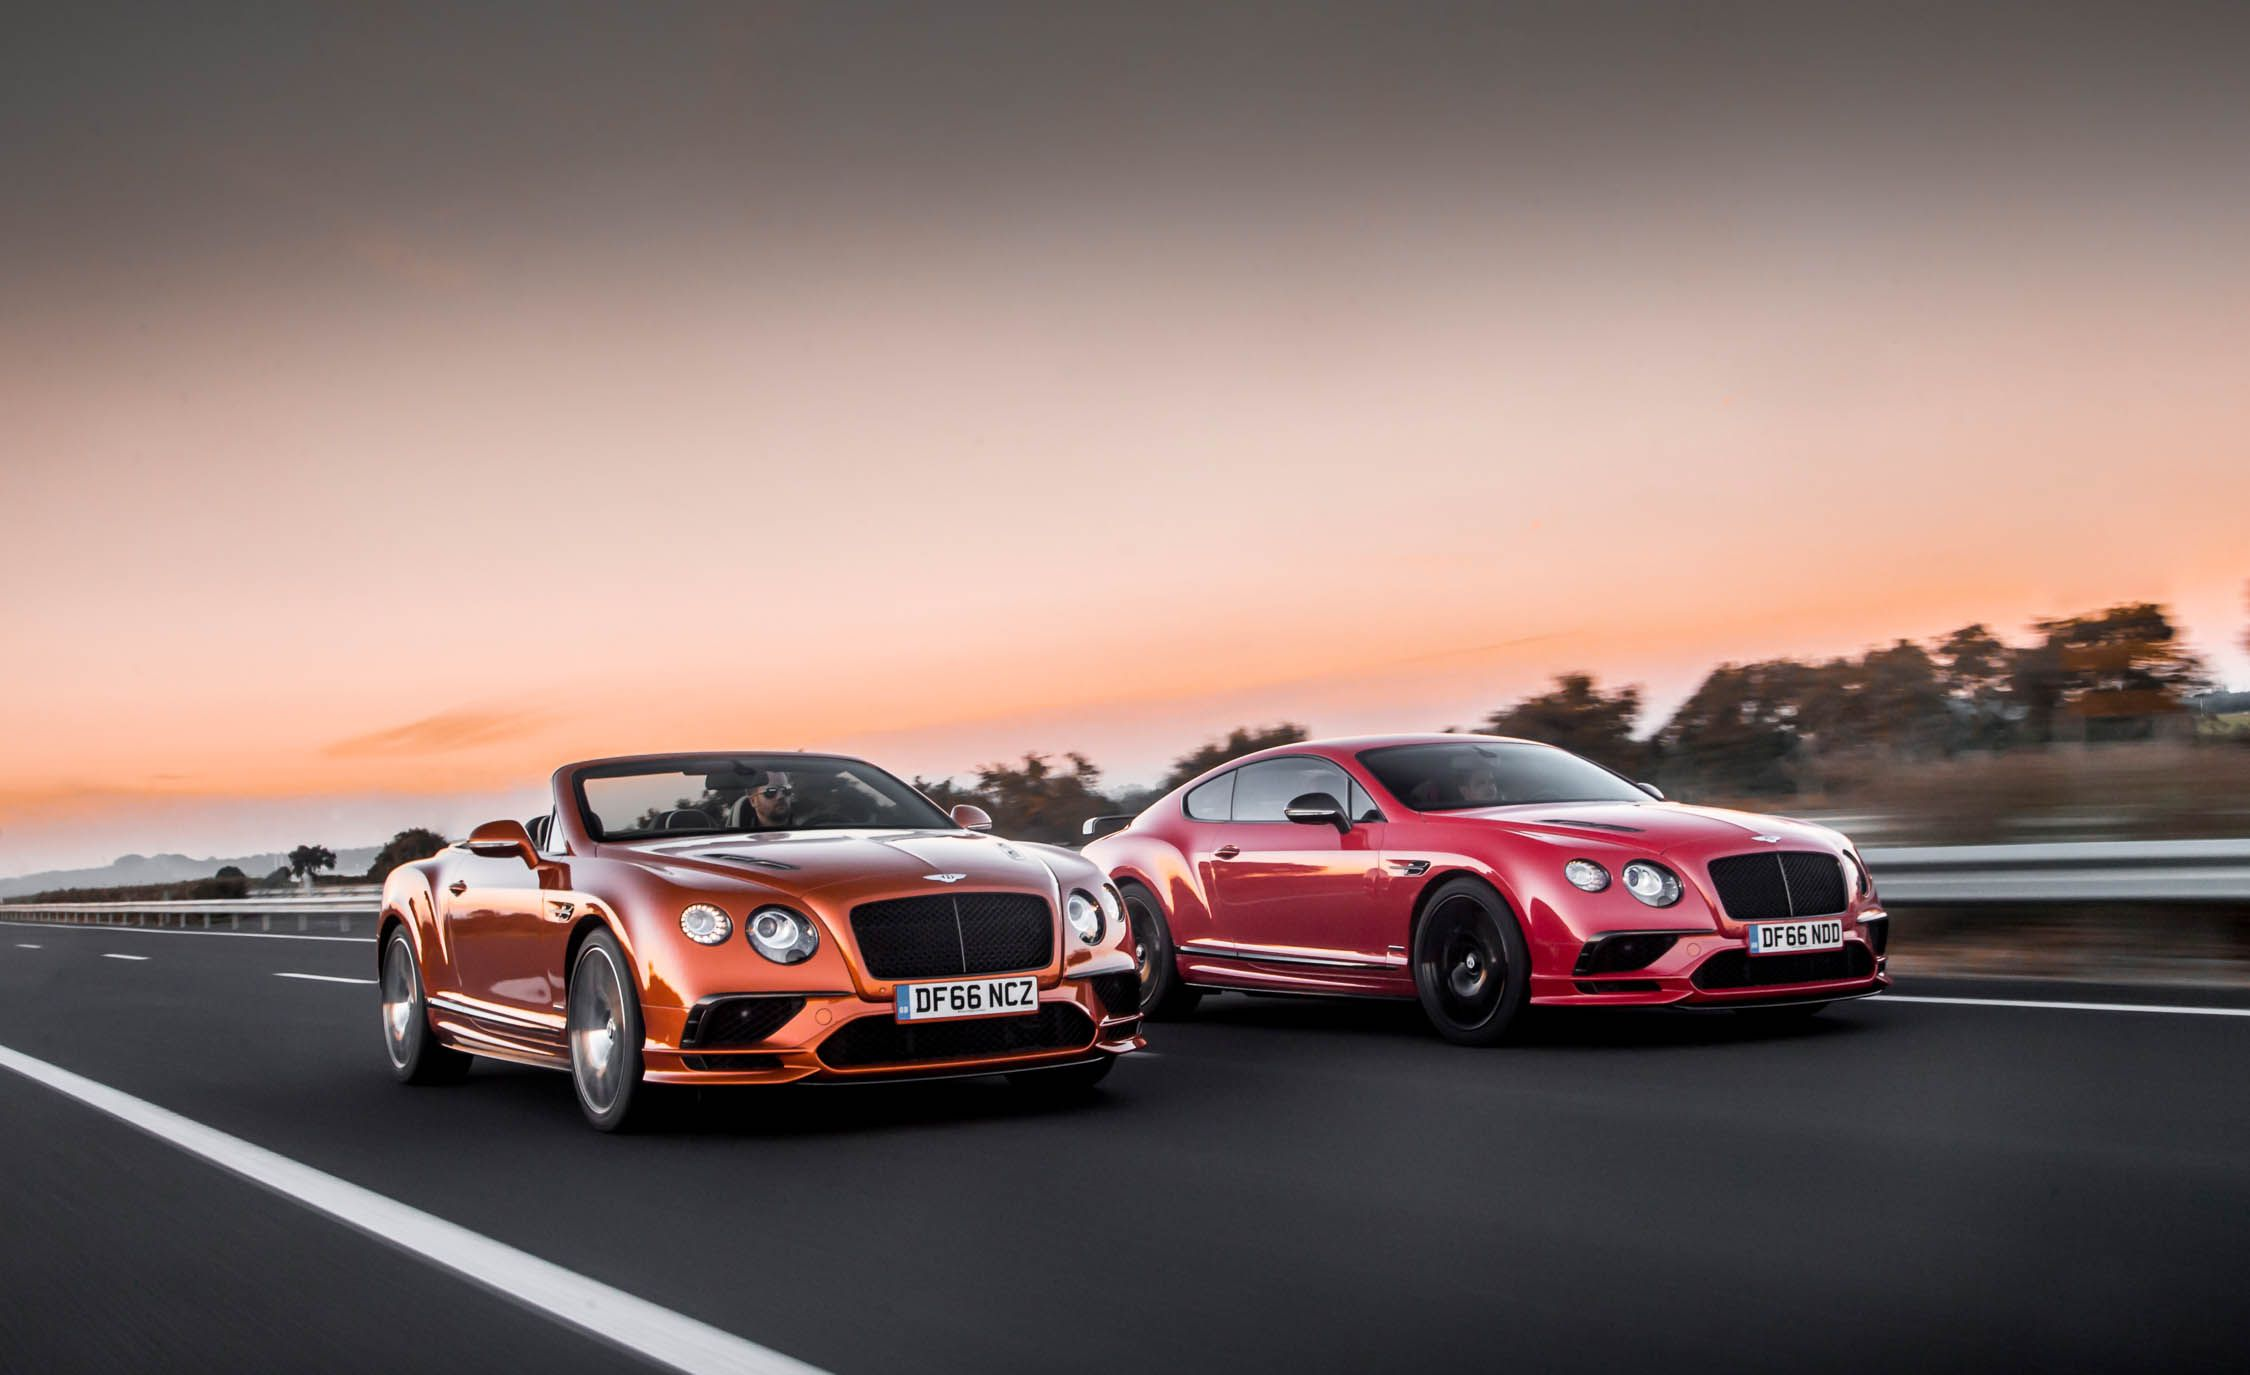 2018 Bentley Continental GT Supersports Coupe and Bentley Continental GT Convertible Wallpapers (8)